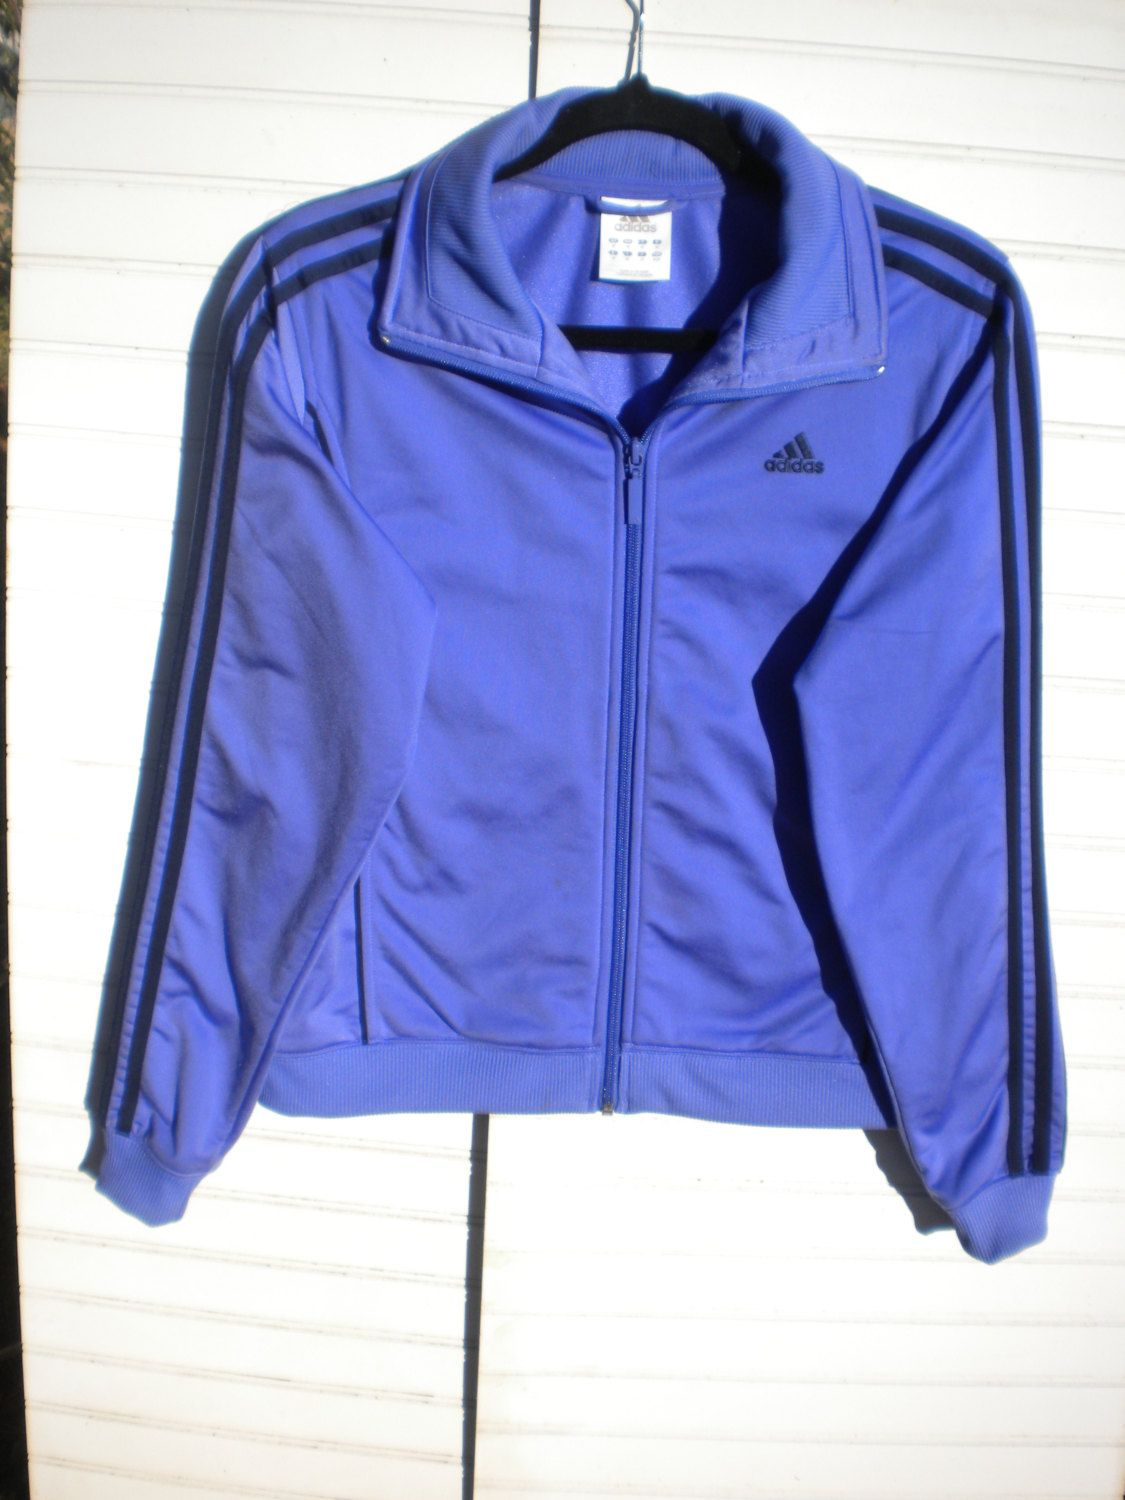 Adidas Track | Jacket 18138 Track Light Purple | a43d2eb - burpimmunitet.website